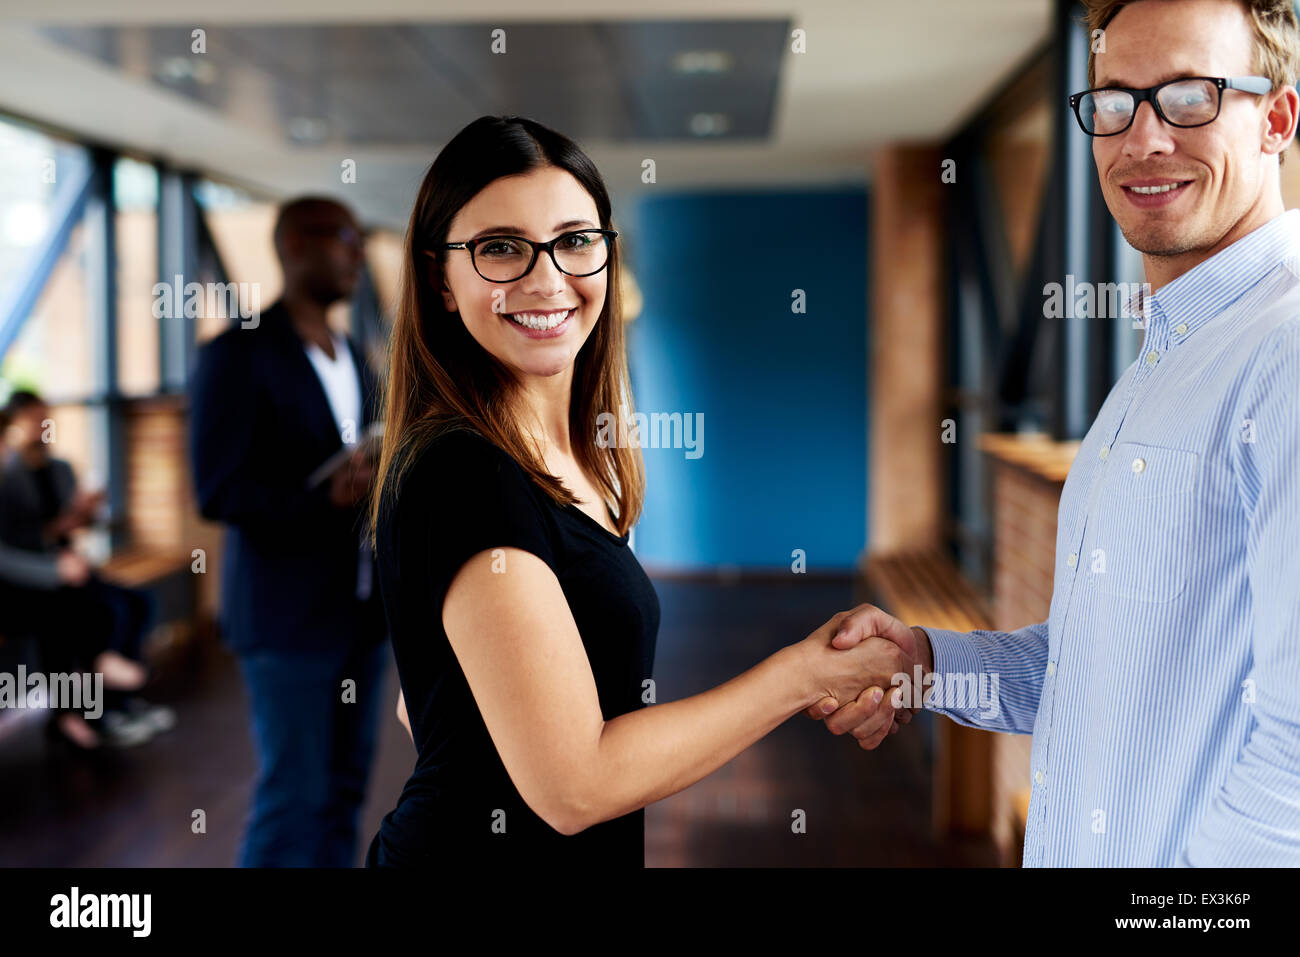 Femelle Mâle blanc et blanc shaking hands and smiling at camera Photo Stock